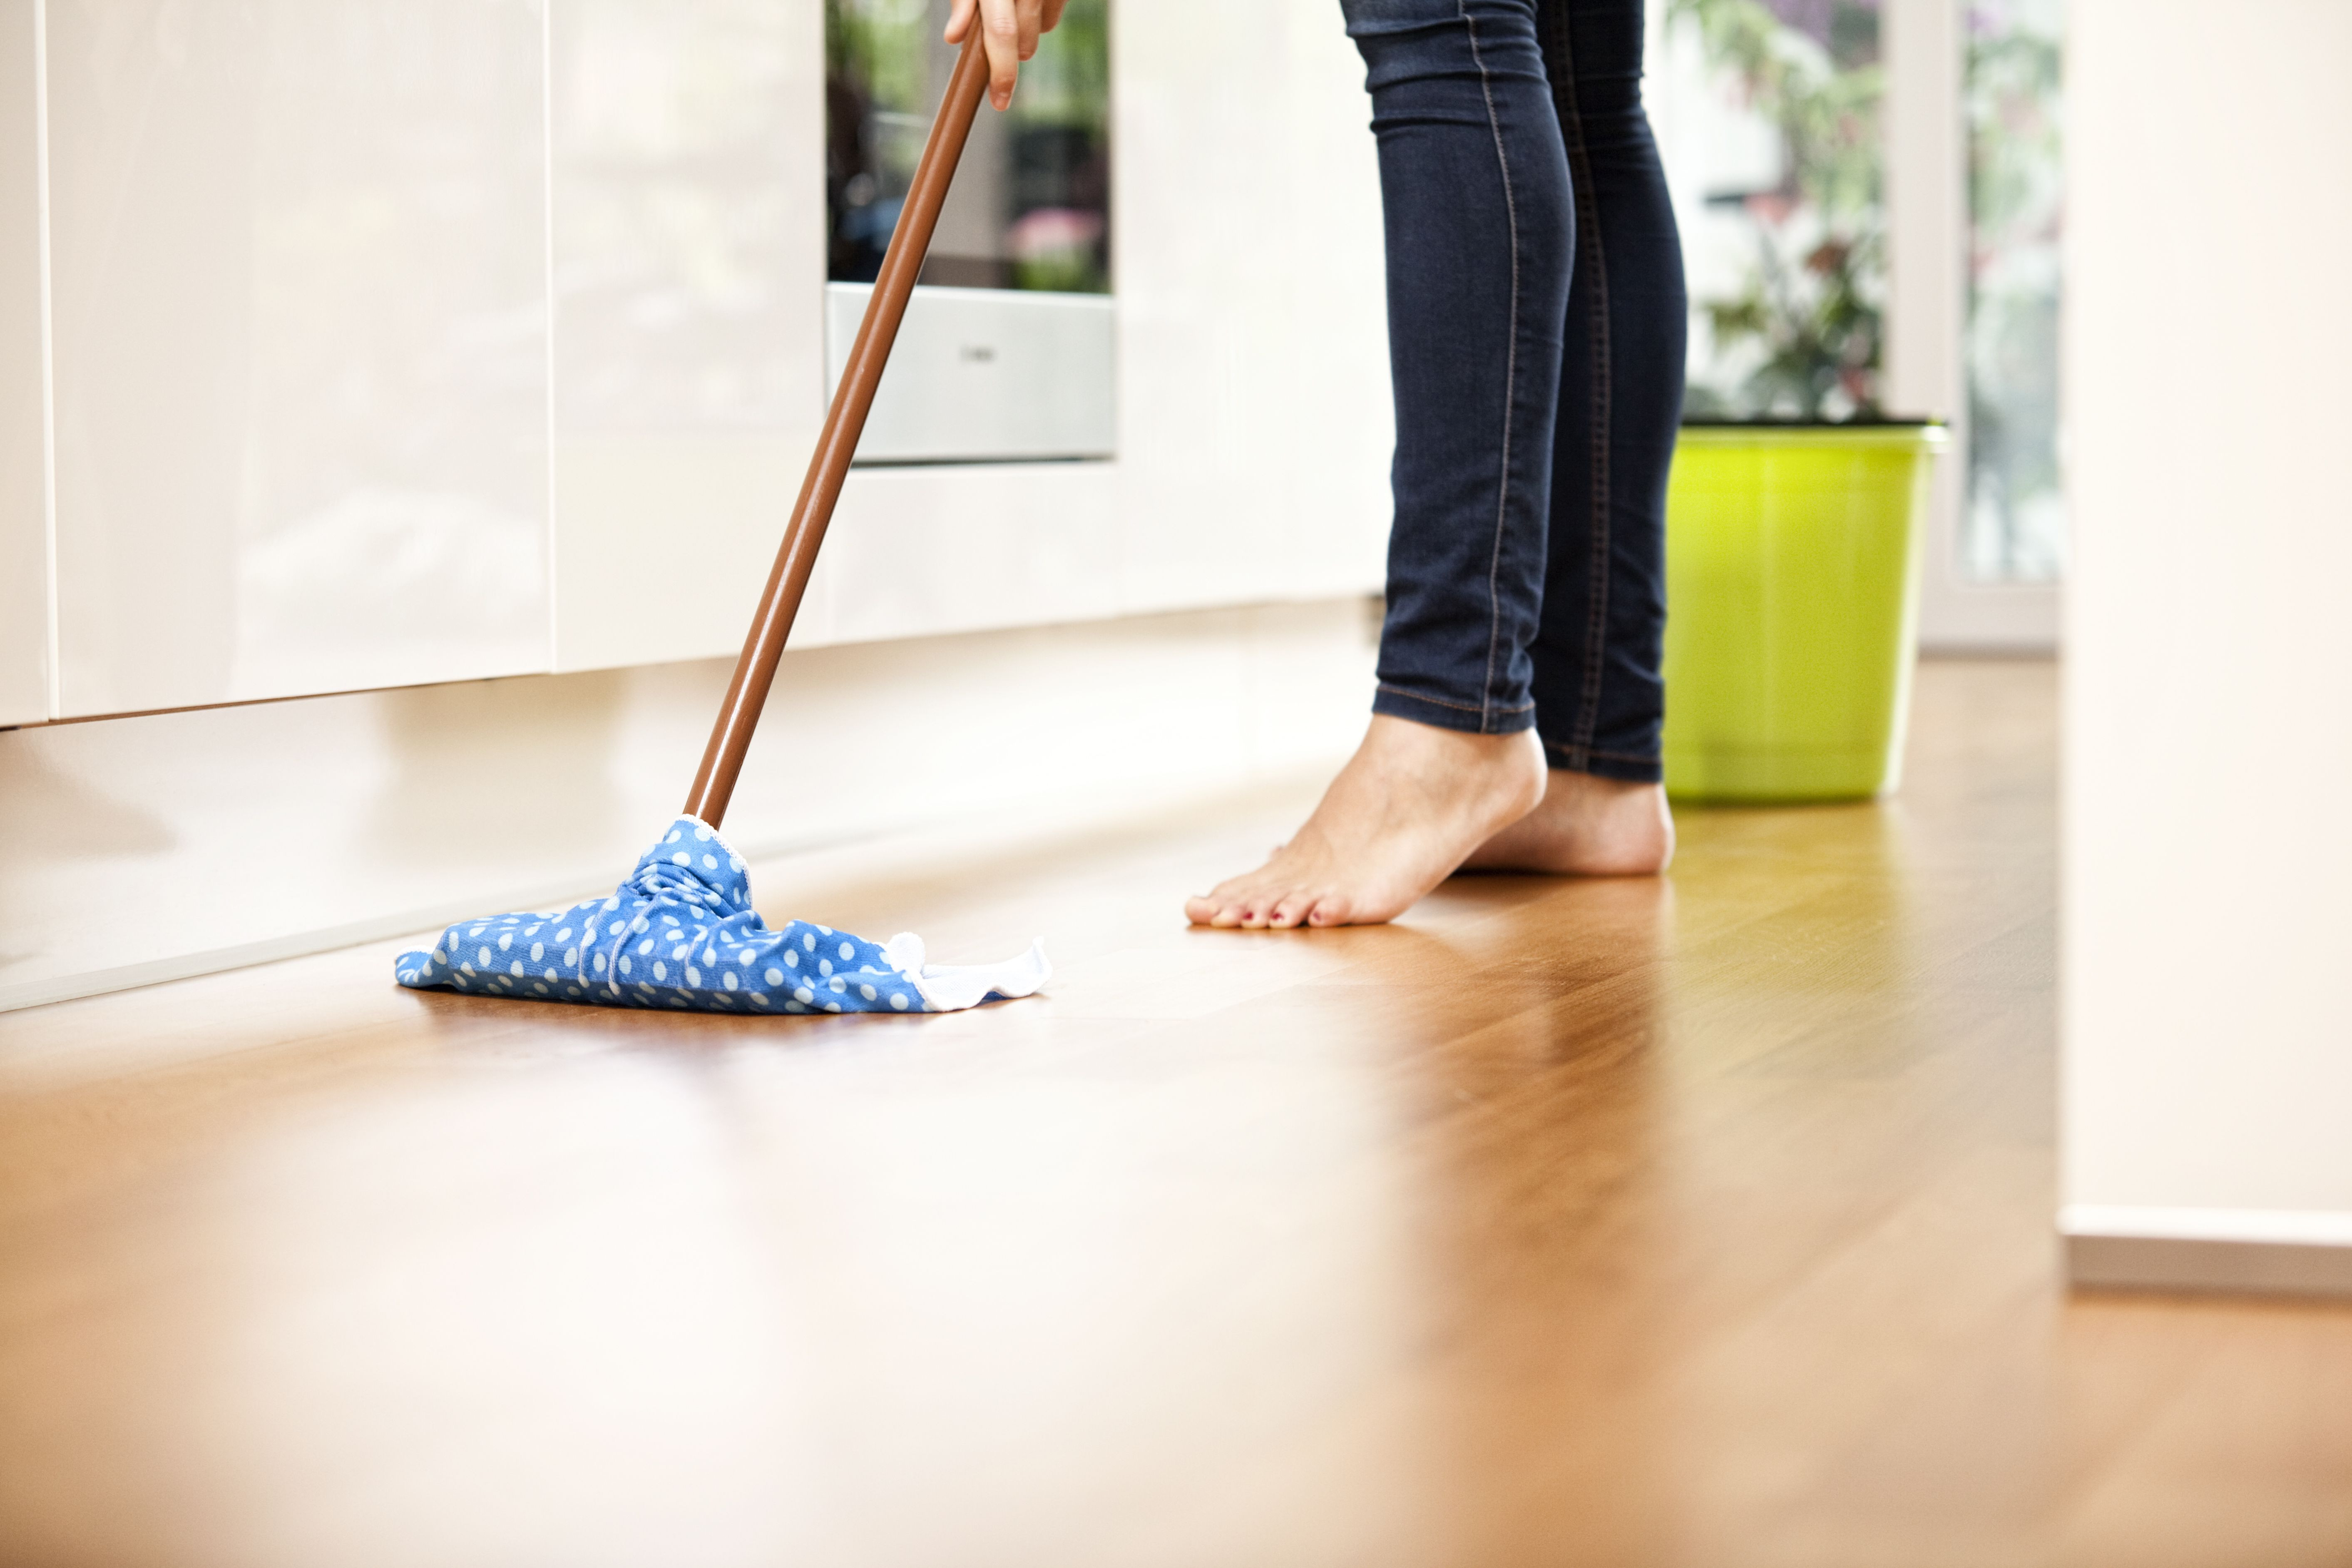 hardwood floor refinishing yorktown va of the right cleaners for your solid hardwood flooring throughout woman wiping the floor 588494585 585049b43df78c491ebc200a